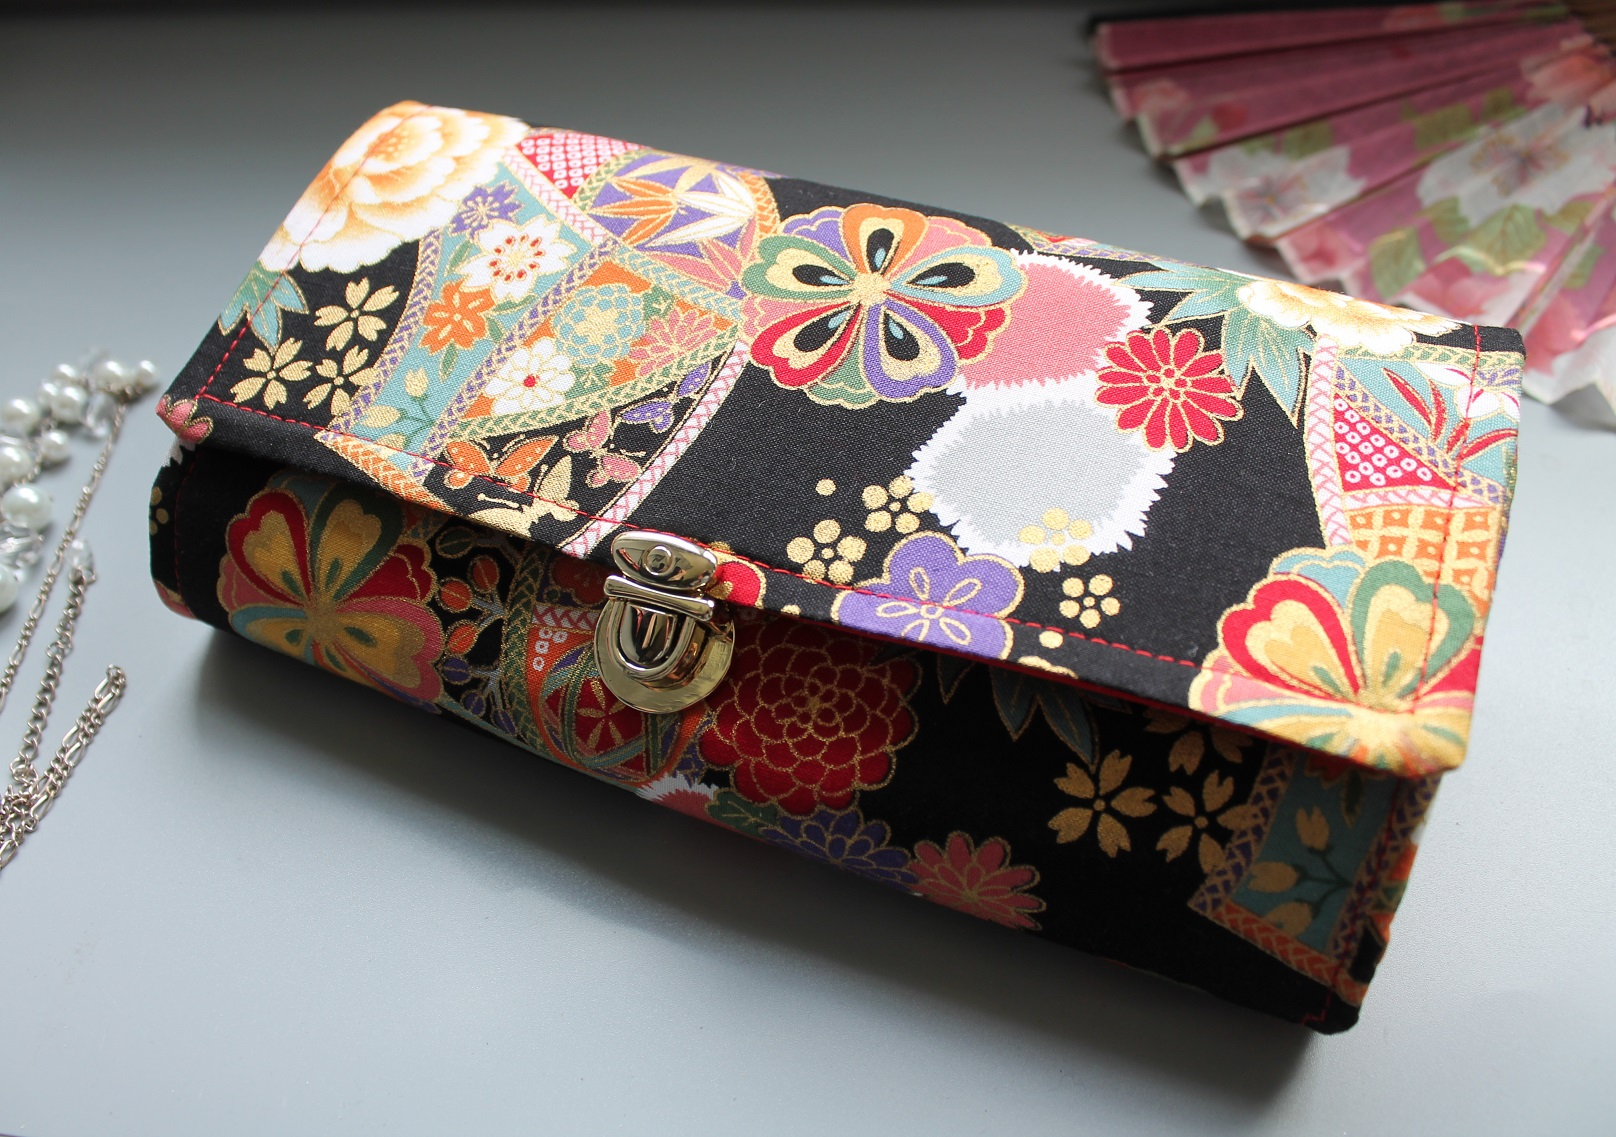 "8.3"" Long wallet card coin holder - Kana"